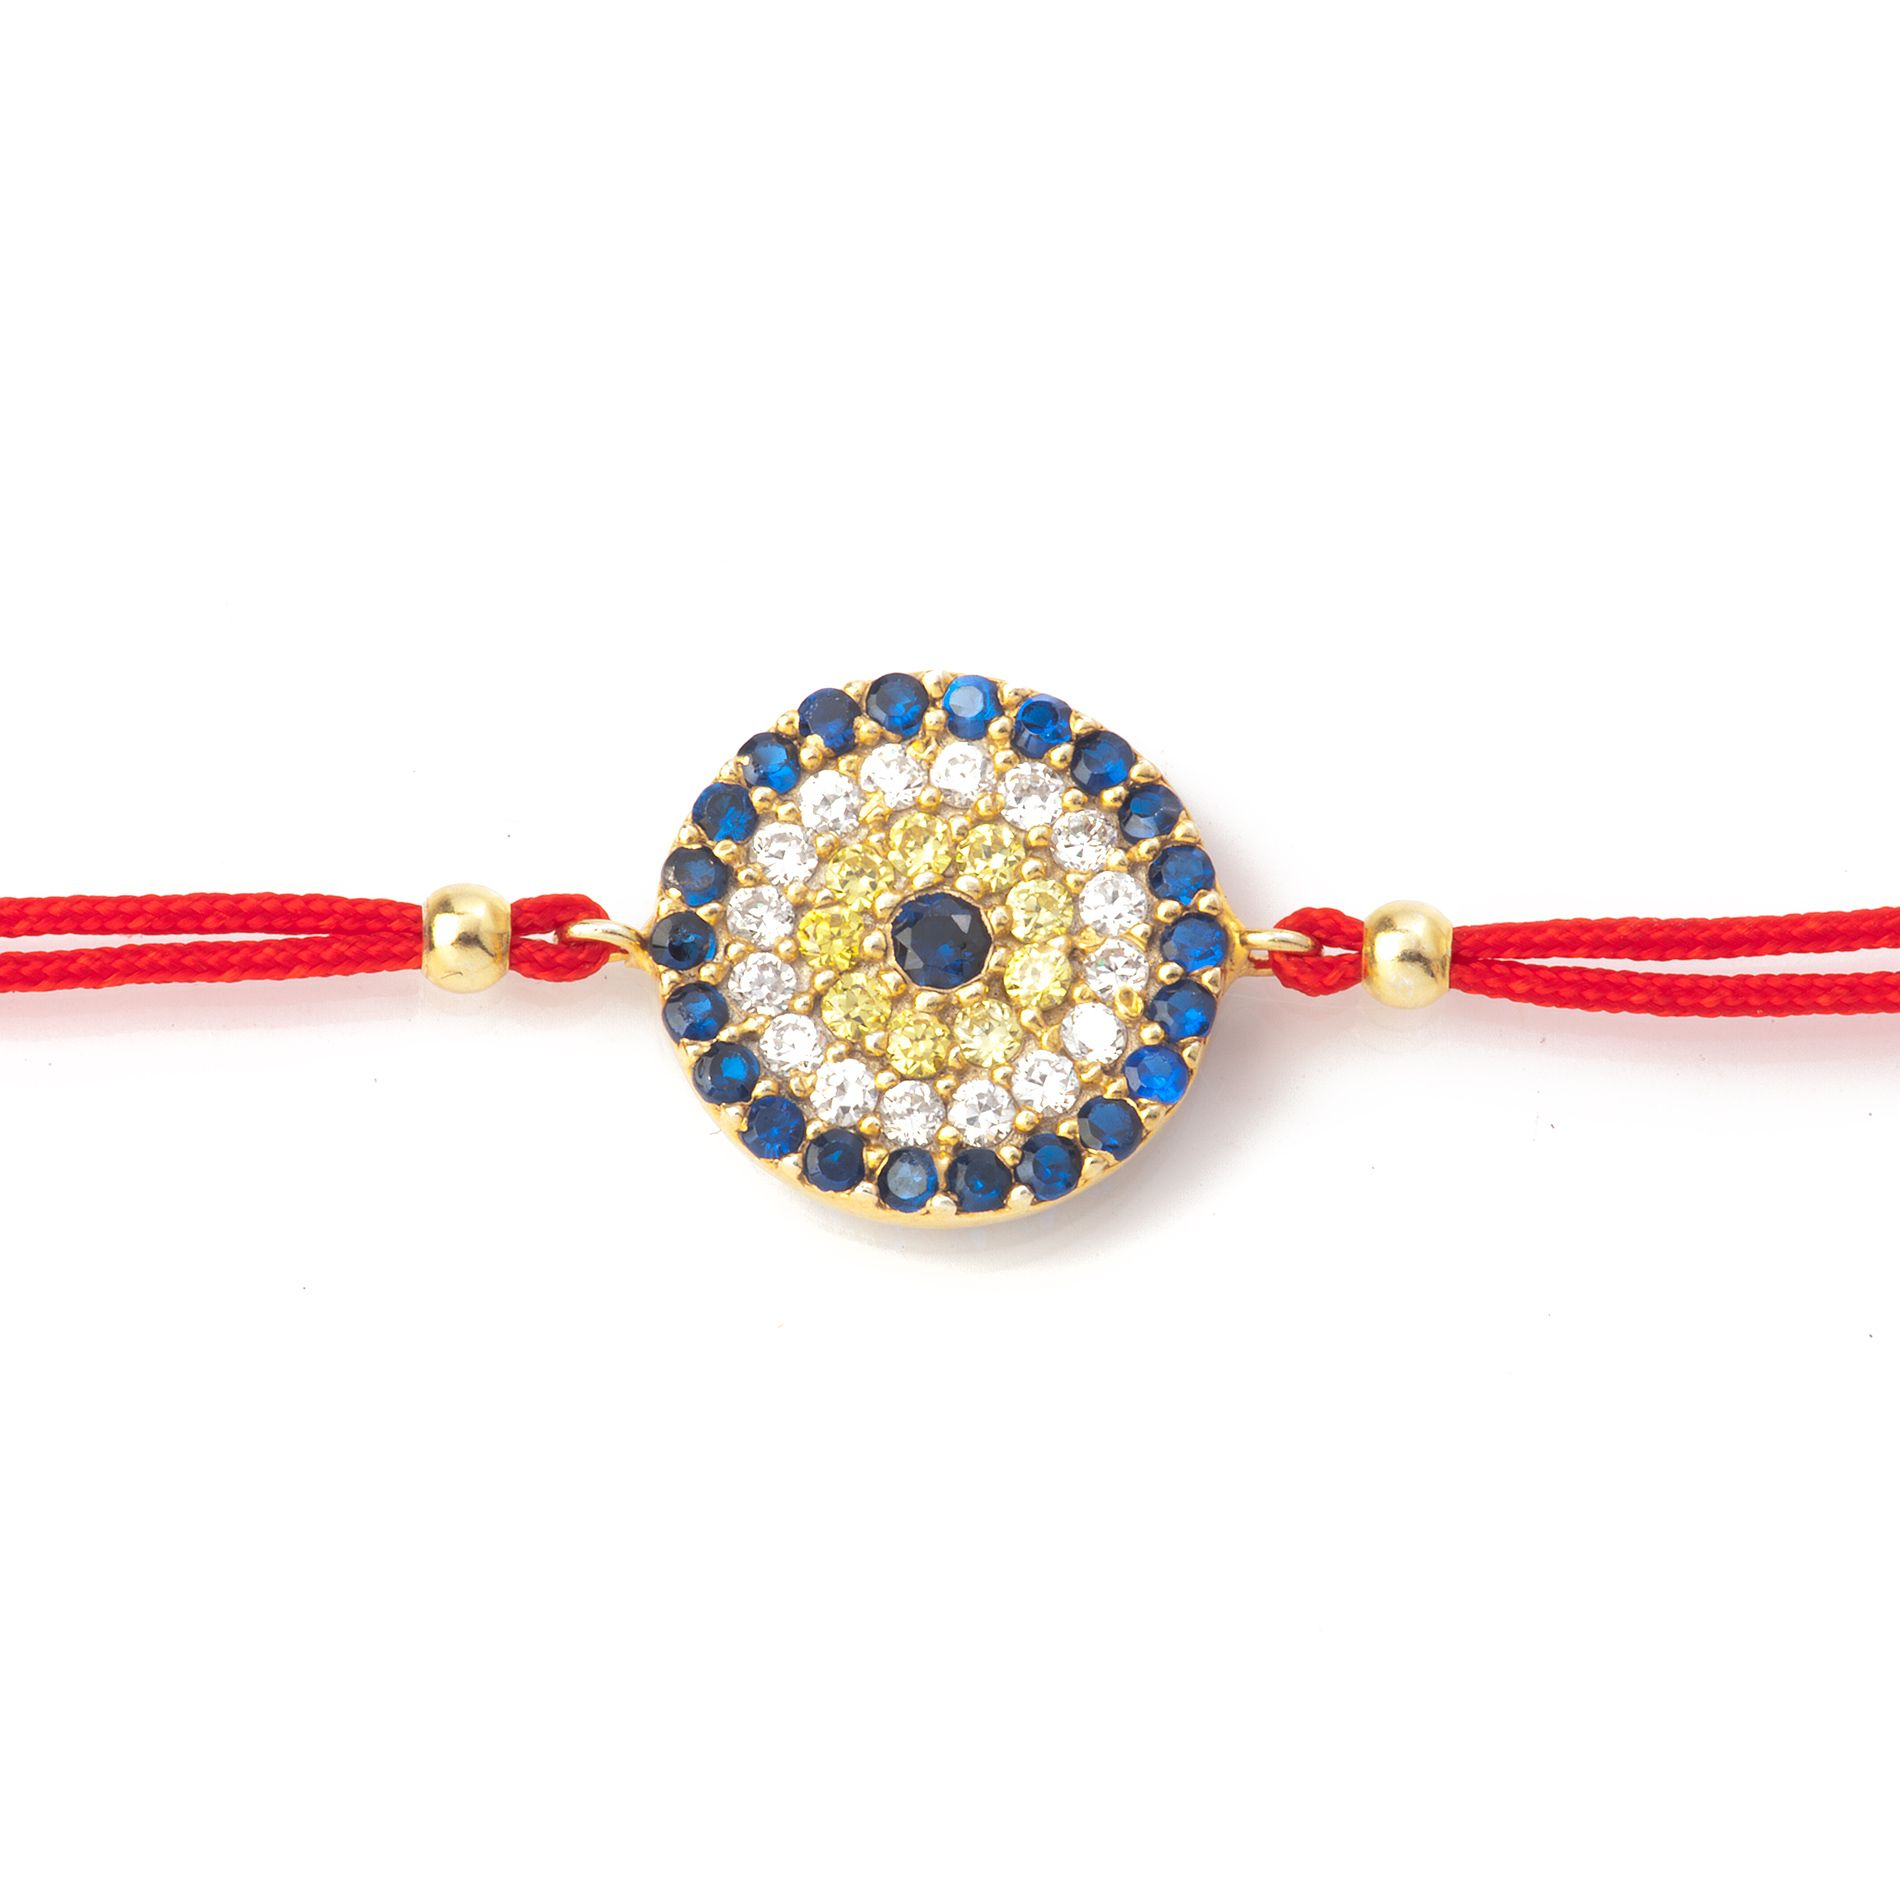 Red cord bracelet with classic evil eye